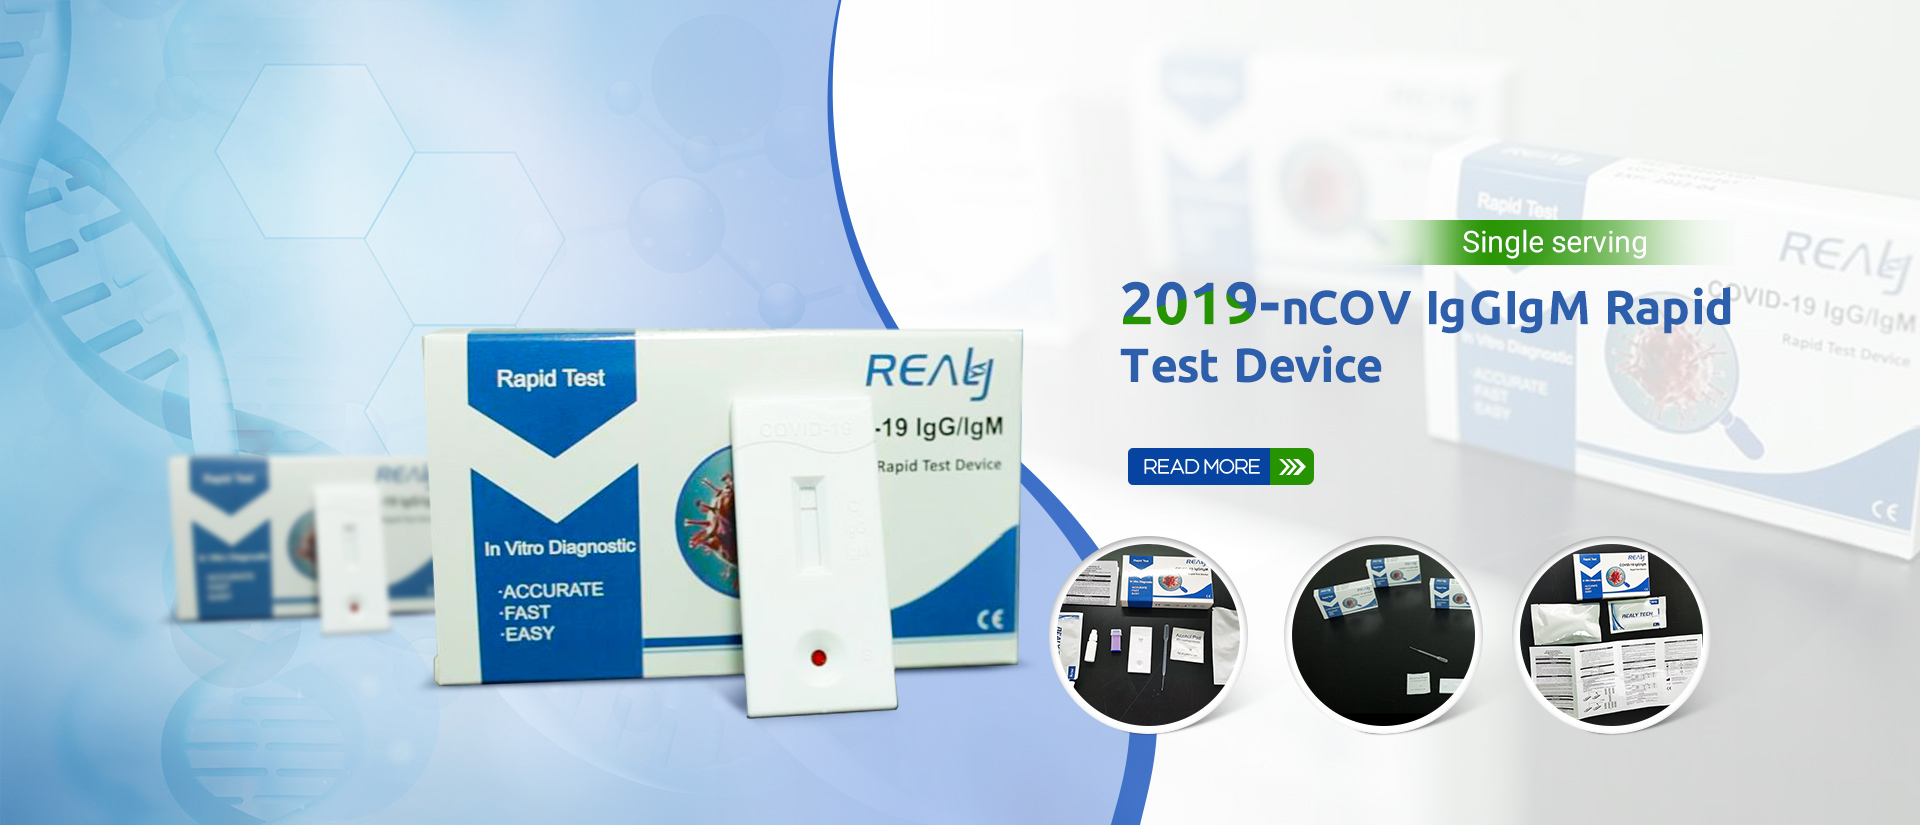 realytech rapid test kit